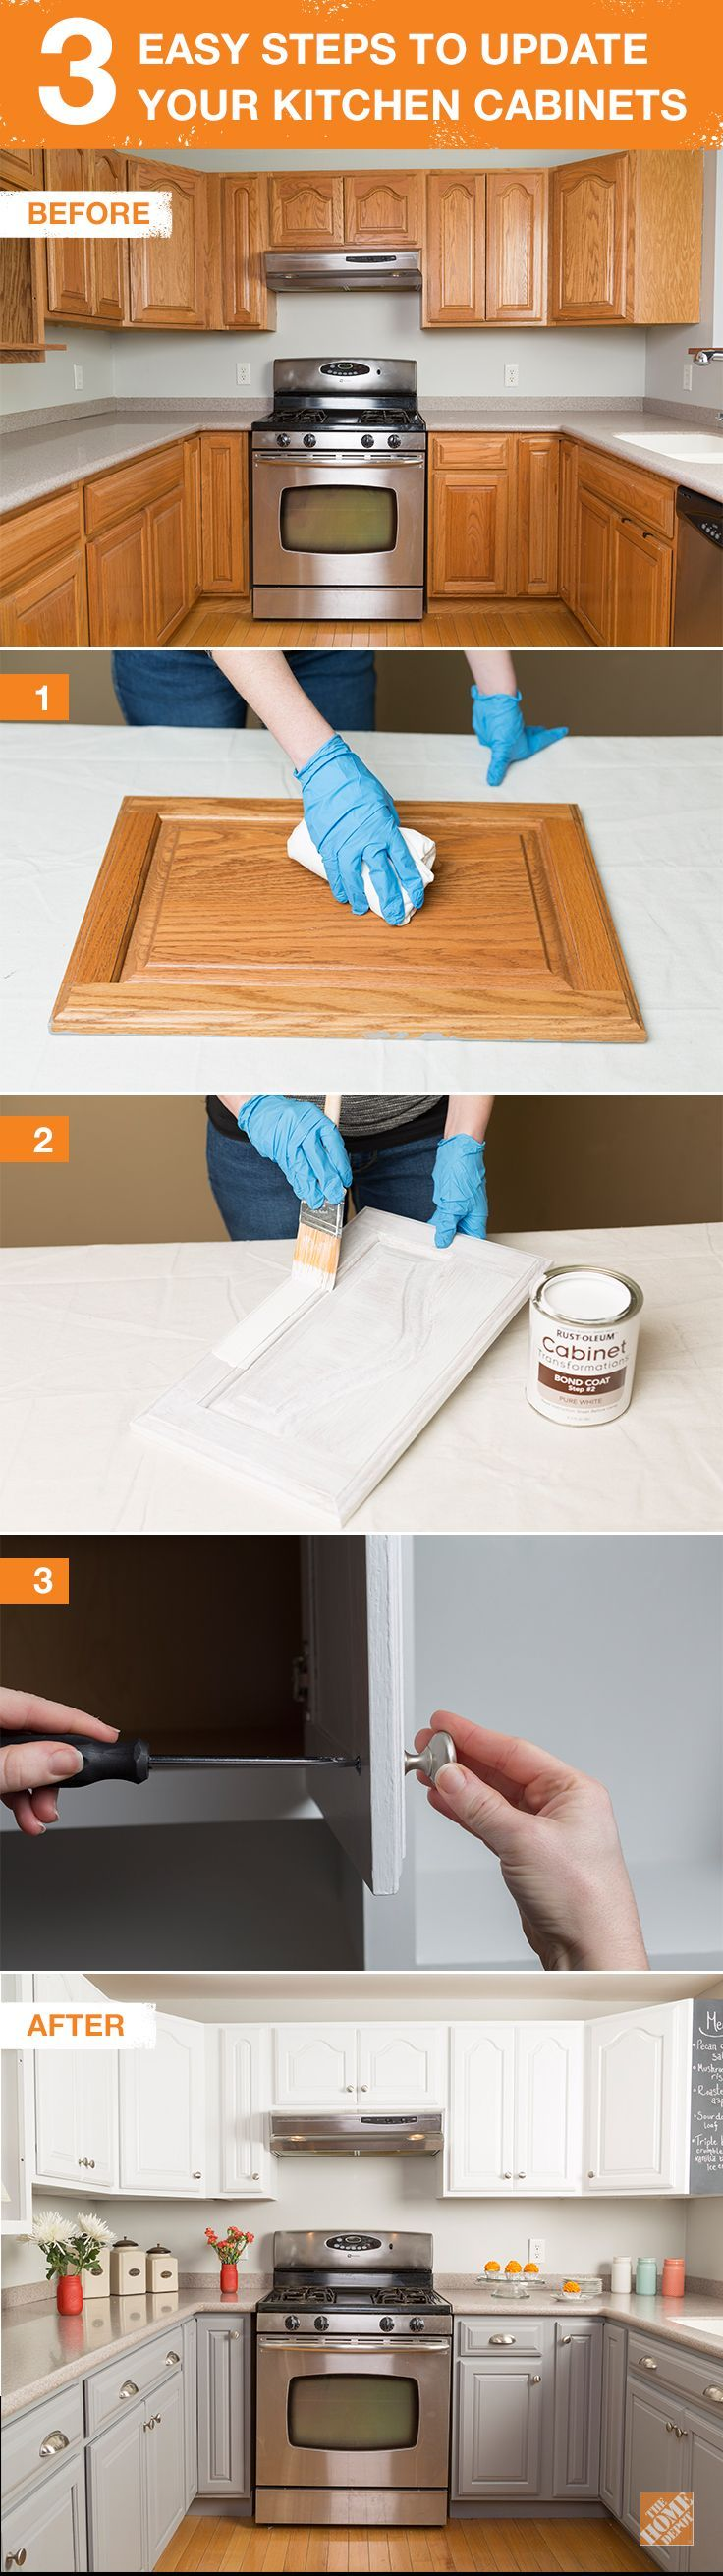 Get the Look of New Kitchen Cabinets the Easy Way   Cocinas, Muebles ...